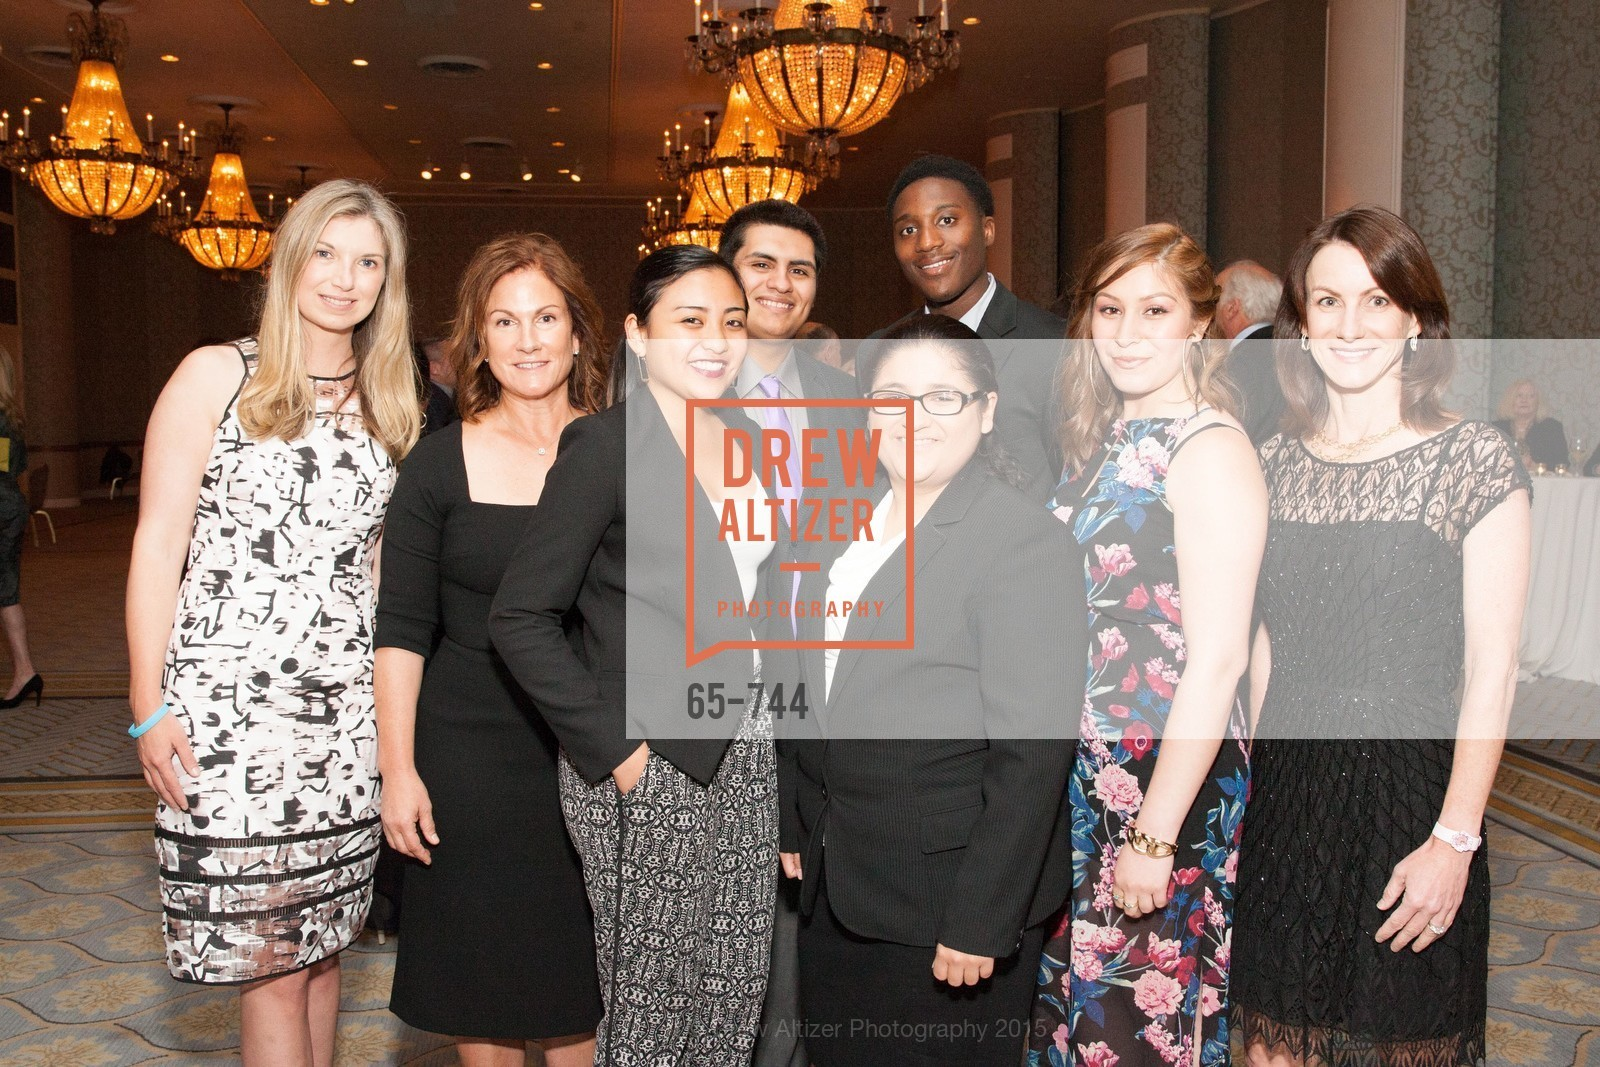 Cameron Phleger, Lorin Costolo, Aeris Velasco, Joe Armijo, Khari Brown, Carmen Sosa, Yuri Huerta, Stephanie Mellin, Celebration of Launch of SHYP in Los Angeles, US, May 21st, 2015,Drew Altizer, Drew Altizer Photography, full-service agency, private events, San Francisco photographer, photographer california